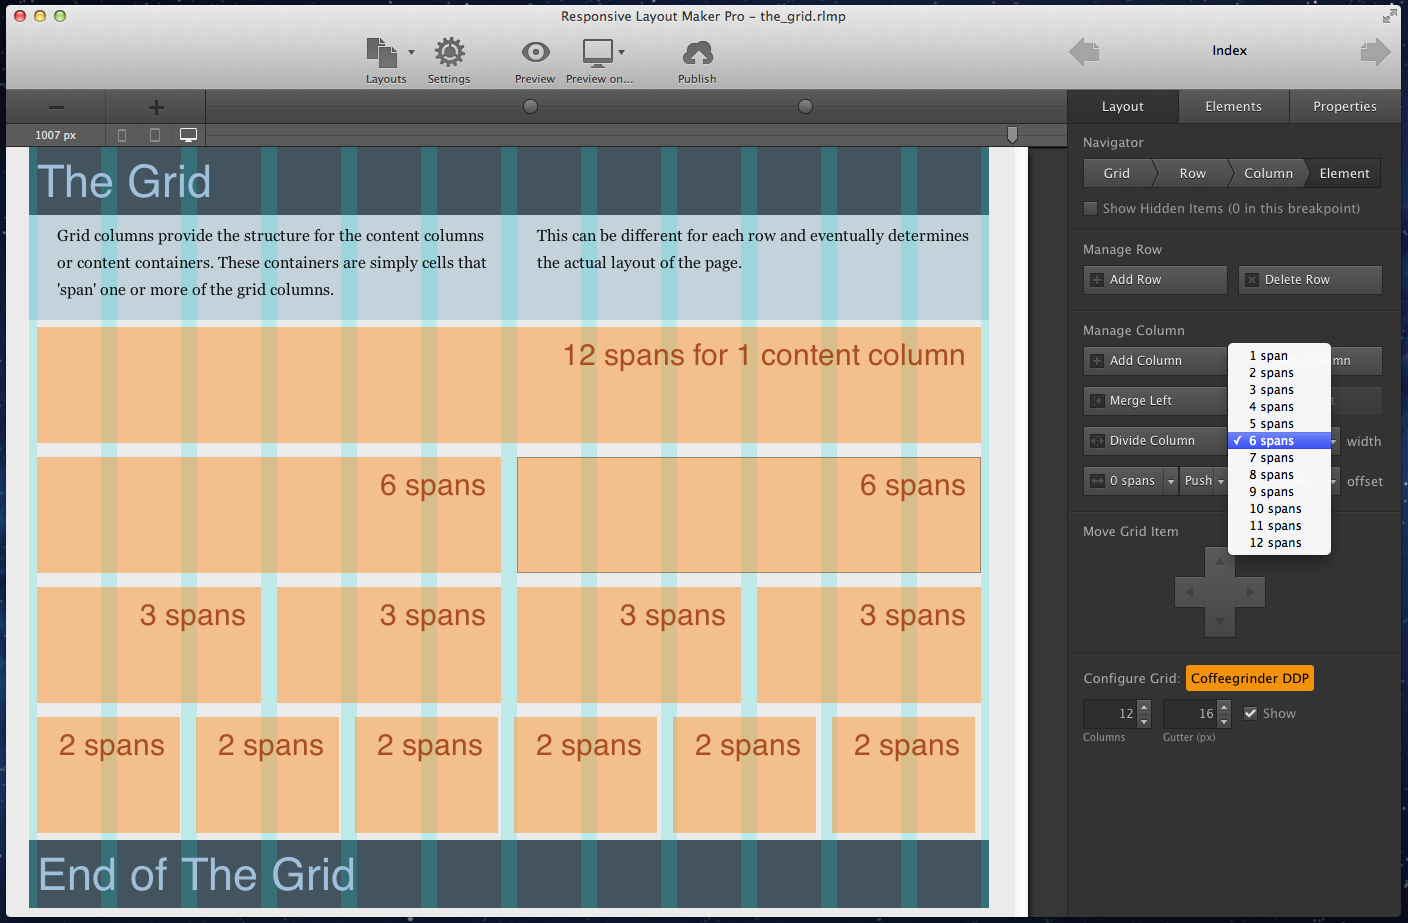 Coffee Cup Responsive Layout Maker : Chapter 1: Managing The Responsive Grid with Layout Maker CoffeeCup Software